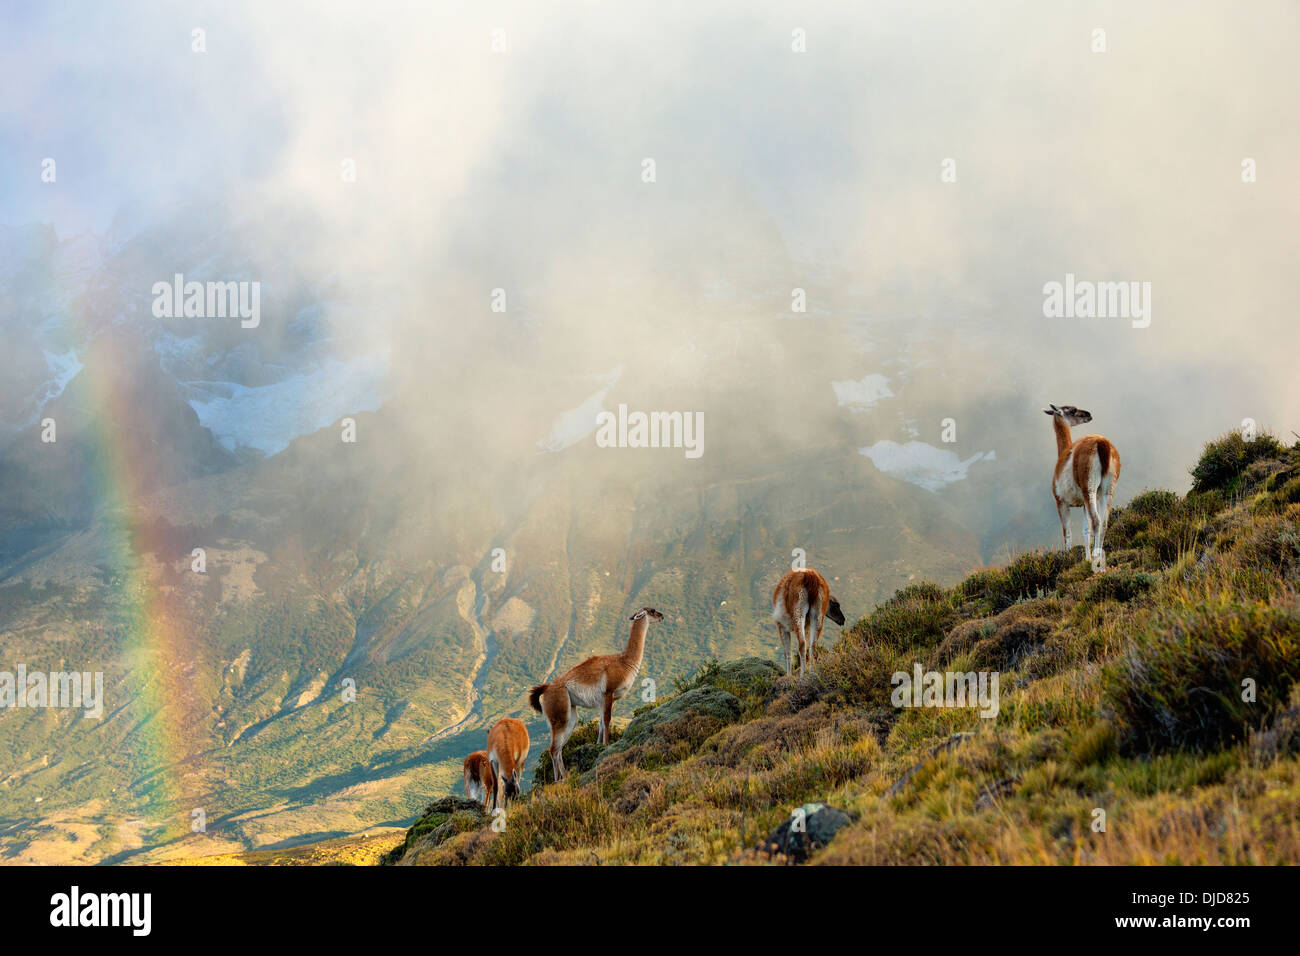 Small group of Guanacos(Lama guanicoe) standing in the mist on the hillside with Torres del Paine mountains and - Stock Image